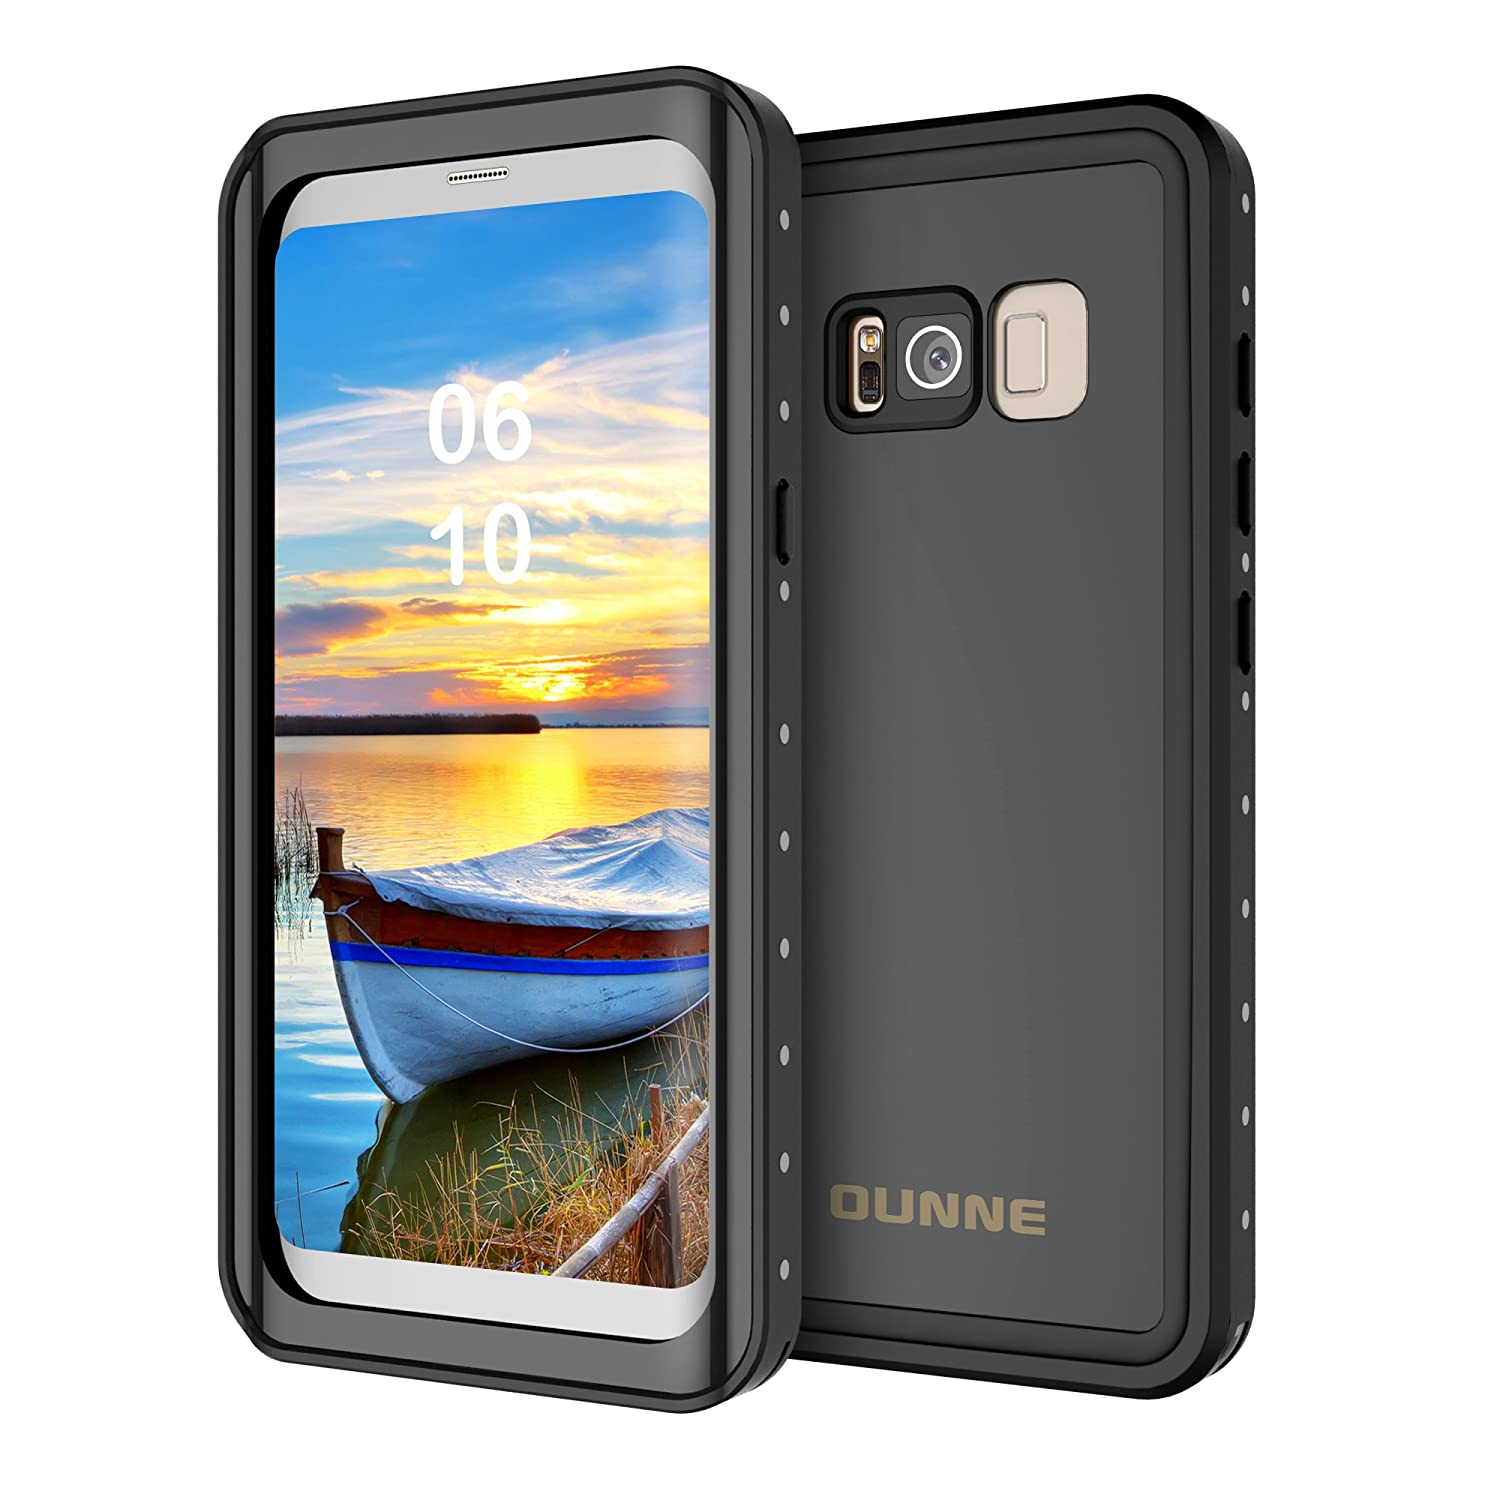 Samsung Galaxy S8 Plus Waterproof Case  OUNNE Shockproof Protective Case with Dirtproof Snowproof Full Body Cover for Galaxy S8 Plus(6.2 inches)  Black OUNNE001 4326539509